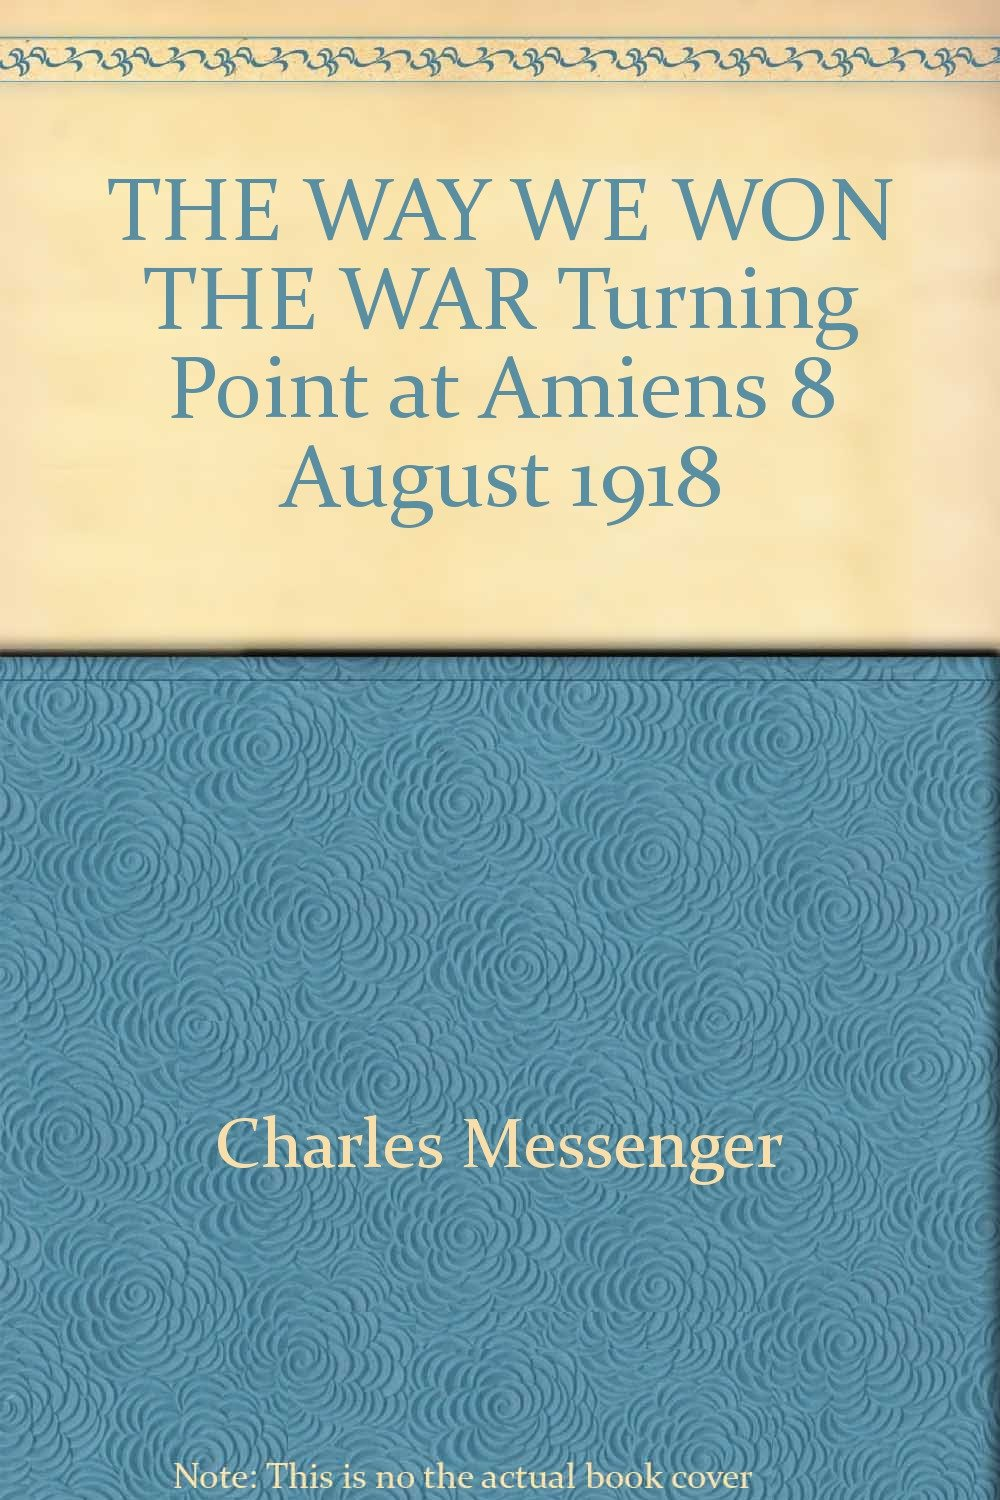 Download The Day We Won the War - Turning Point at Amiens 8 August 1918 pdf epub